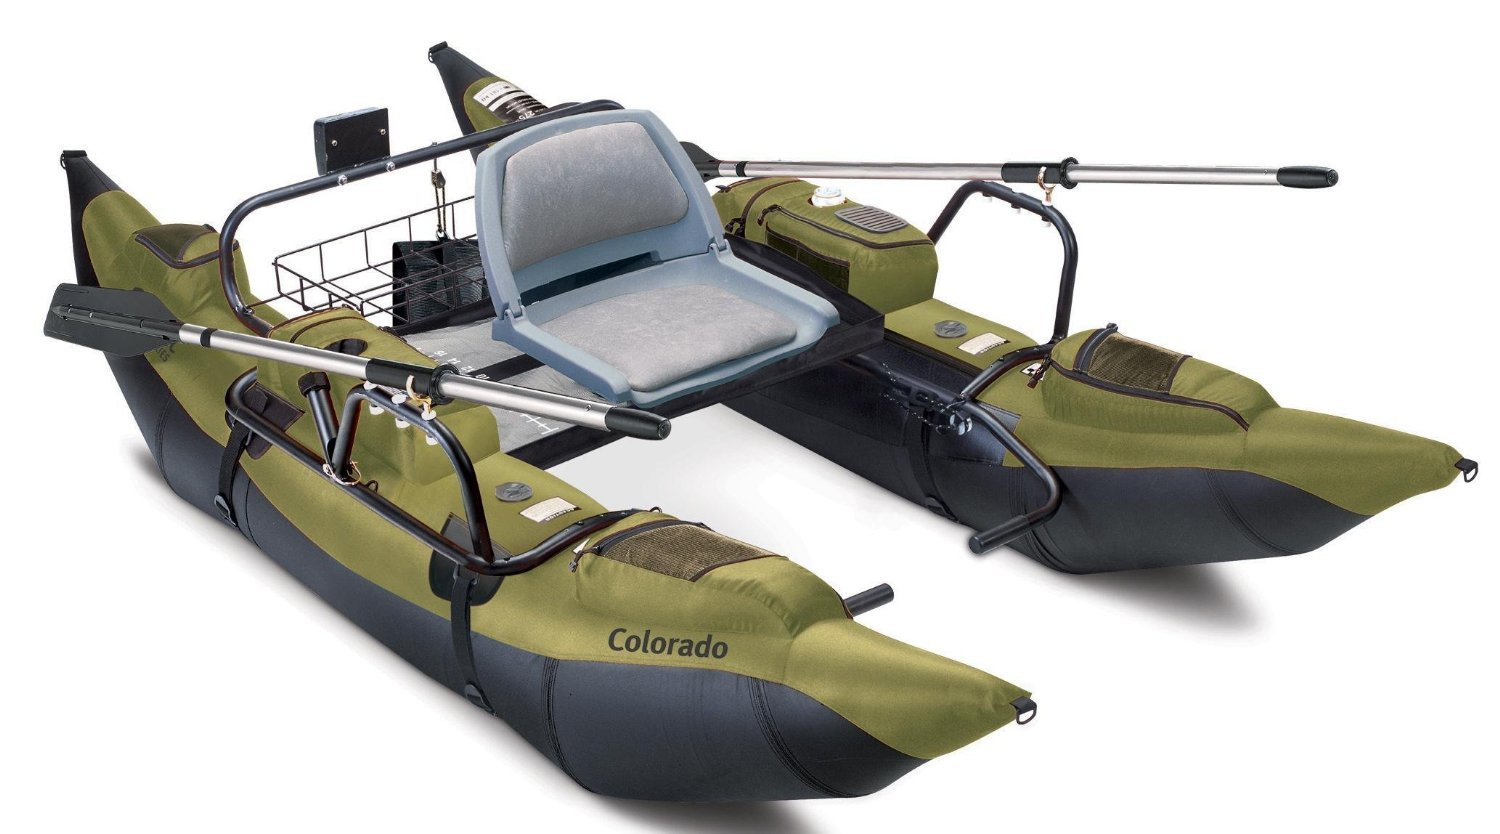 Buy Inflatable Colorado Pontoon Boat Now!